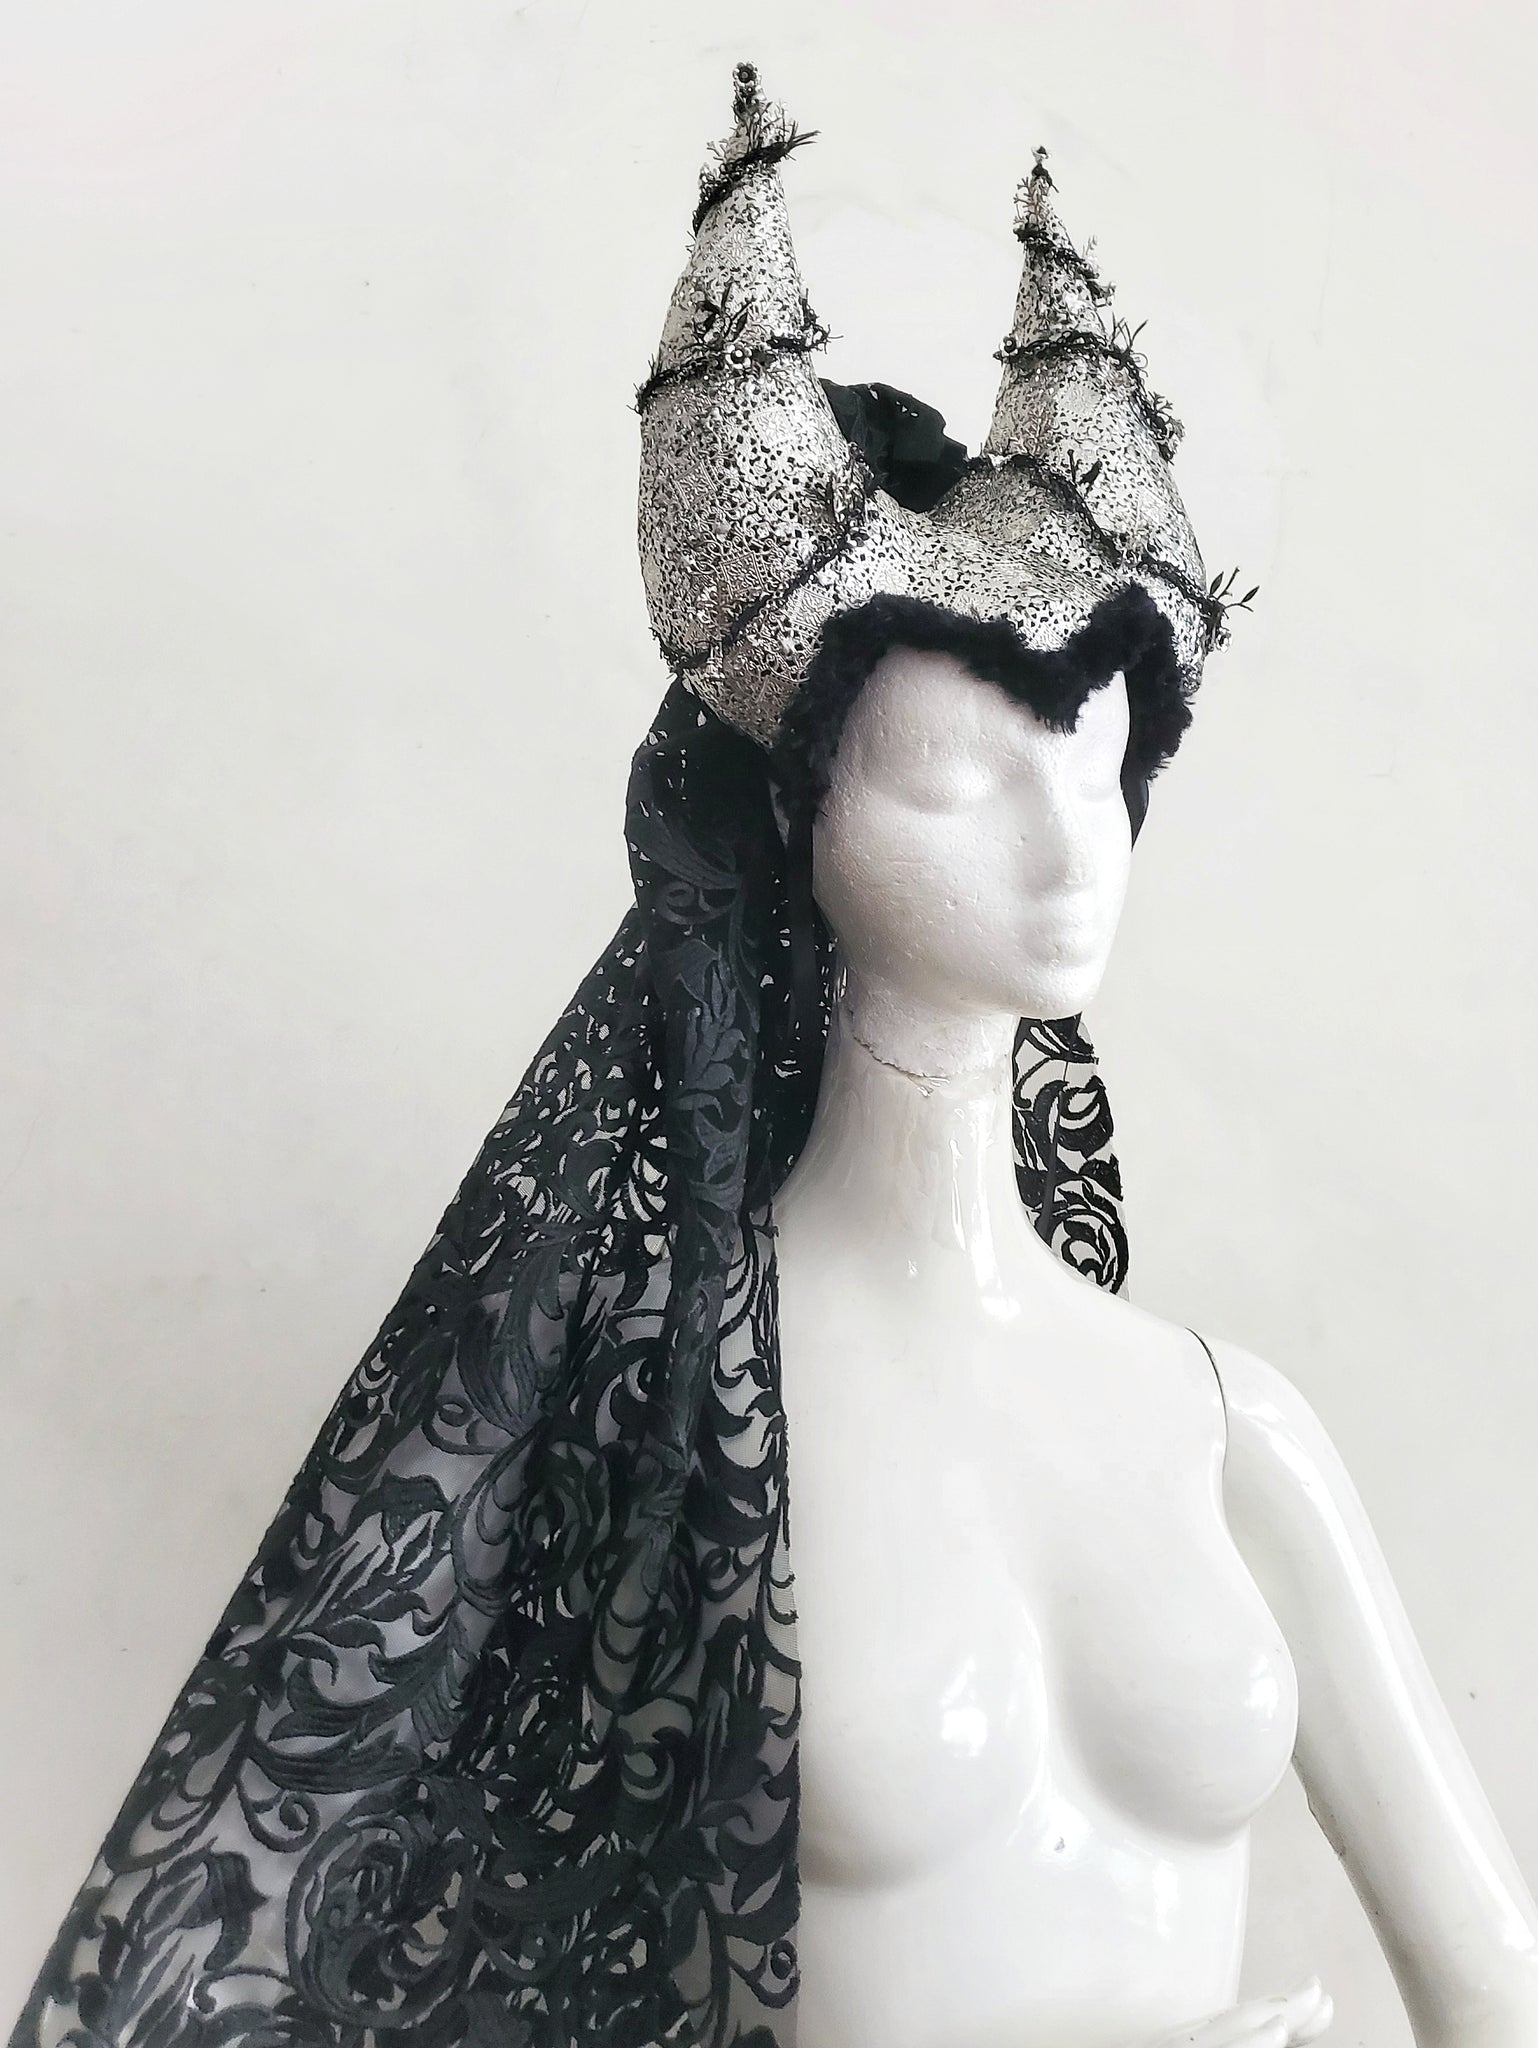 Tribal Goth Horned Headress with Embroidered Veil